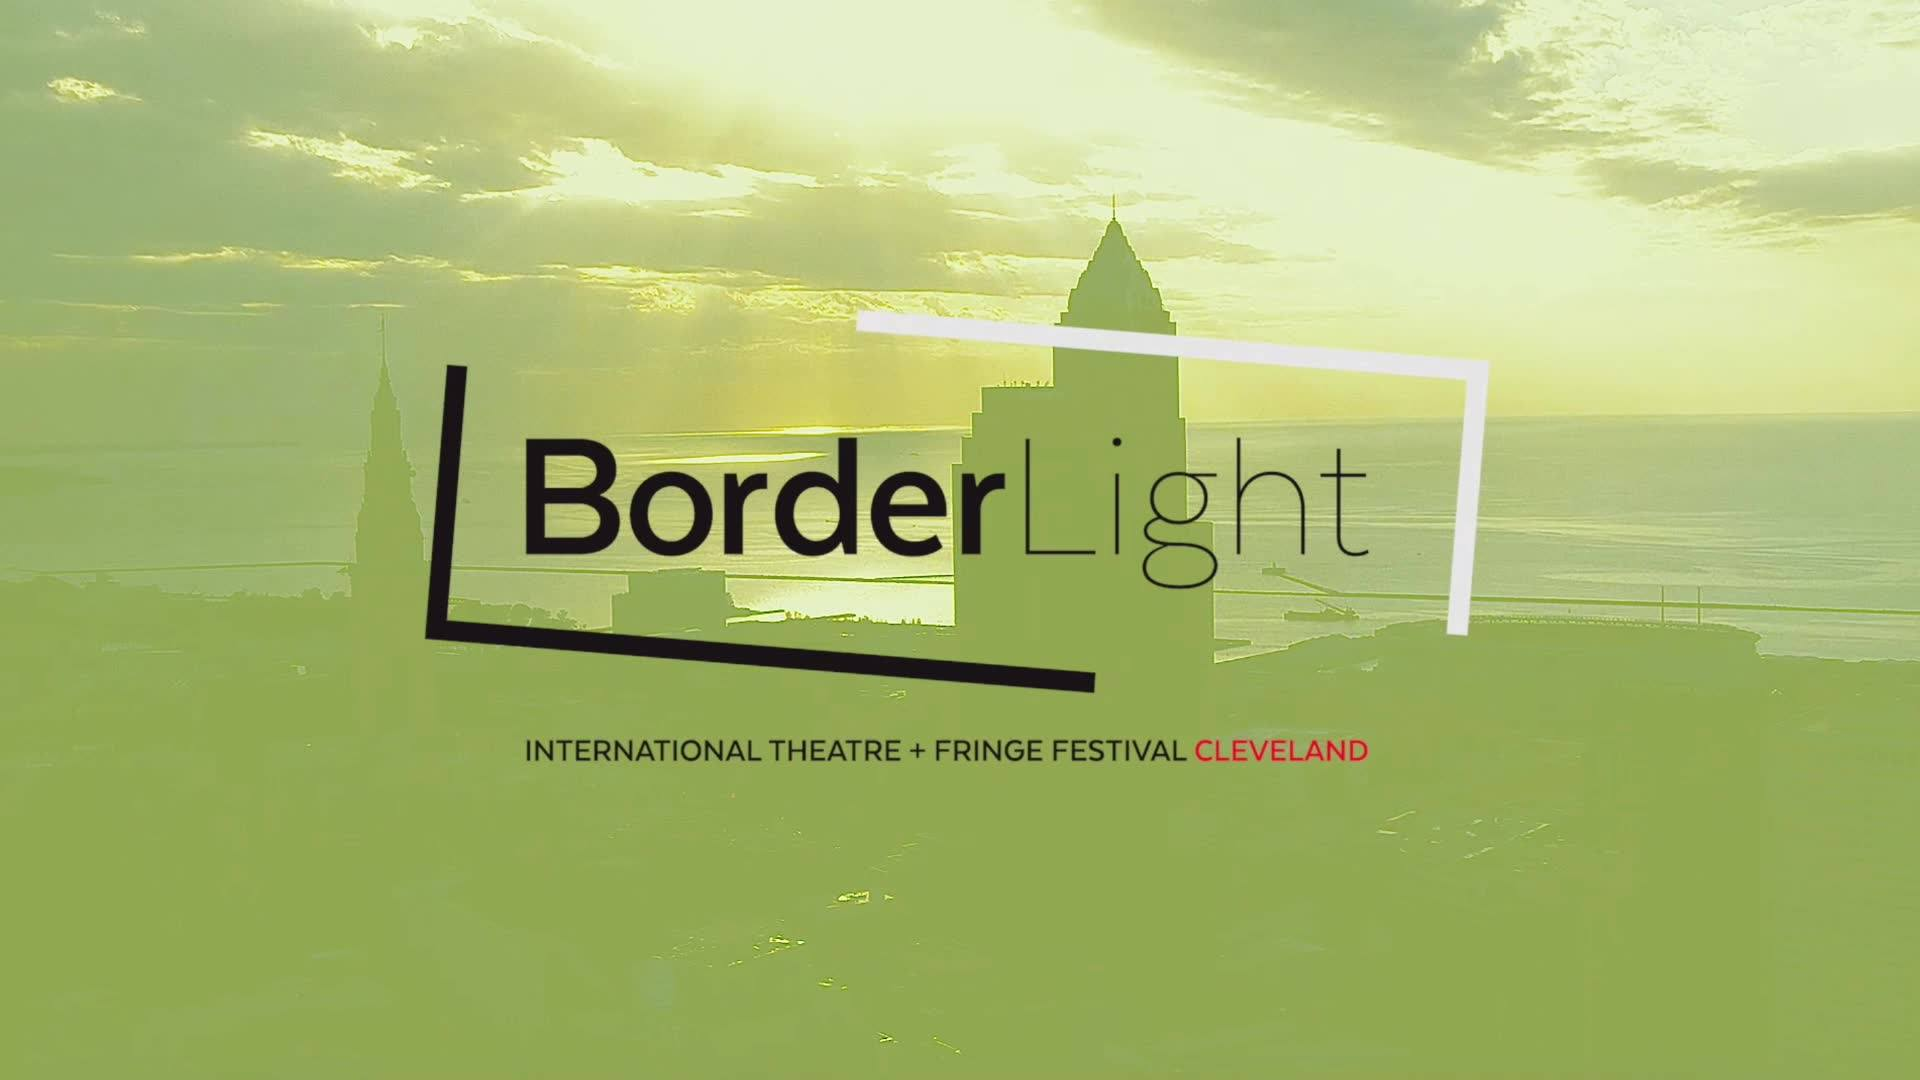 BorderLight International Theatre Festival | Fringe Festival Cleveland